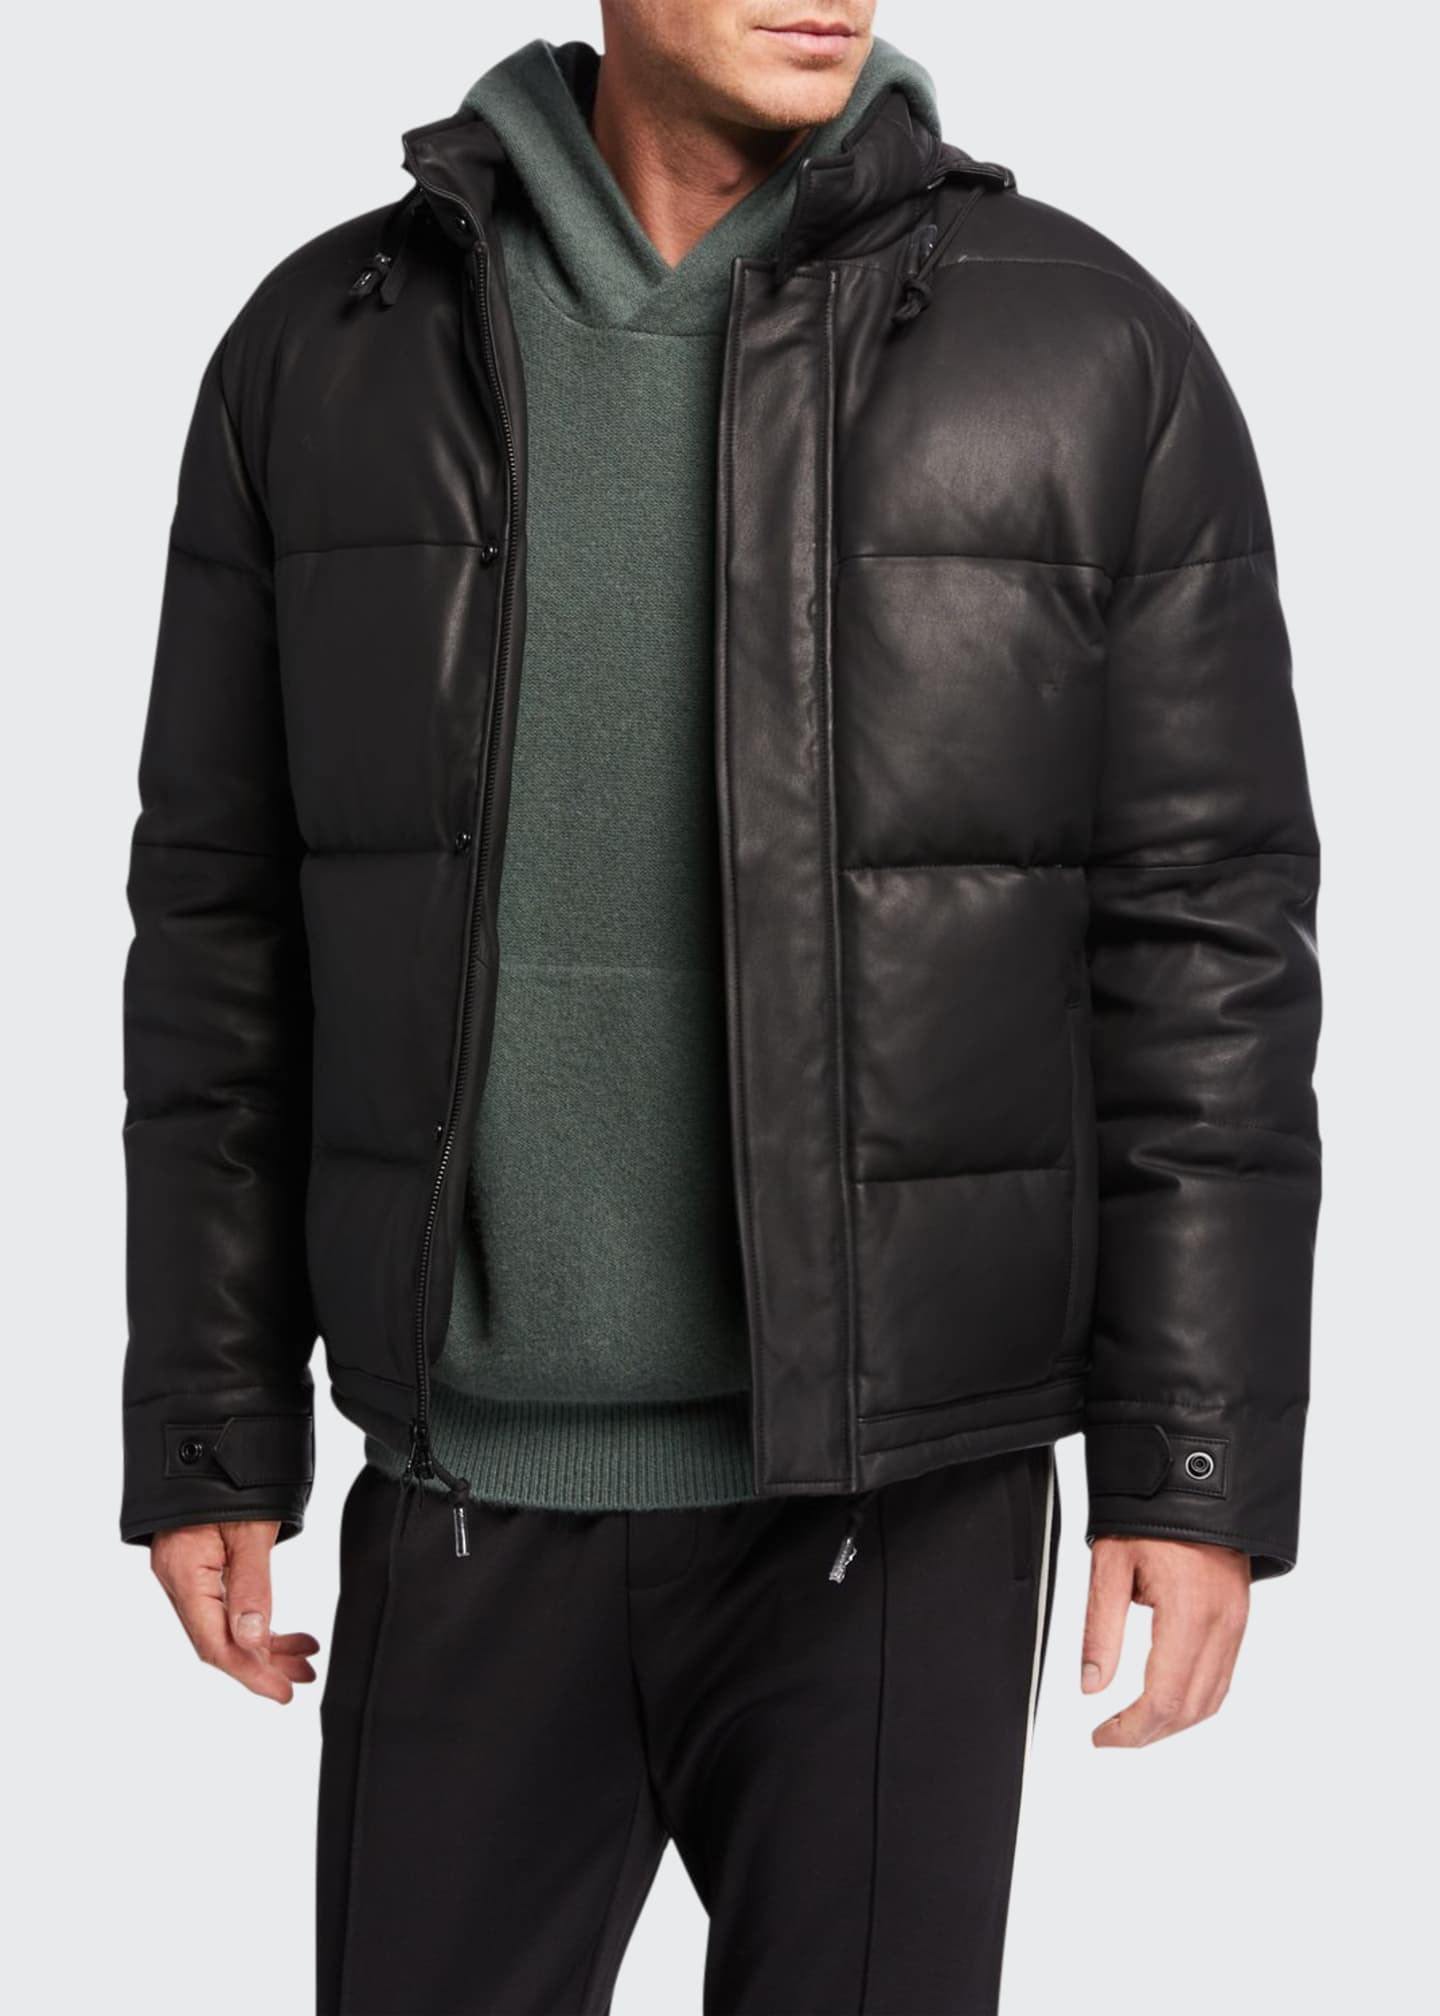 Men's Down Filled Leather Puffer Jacket